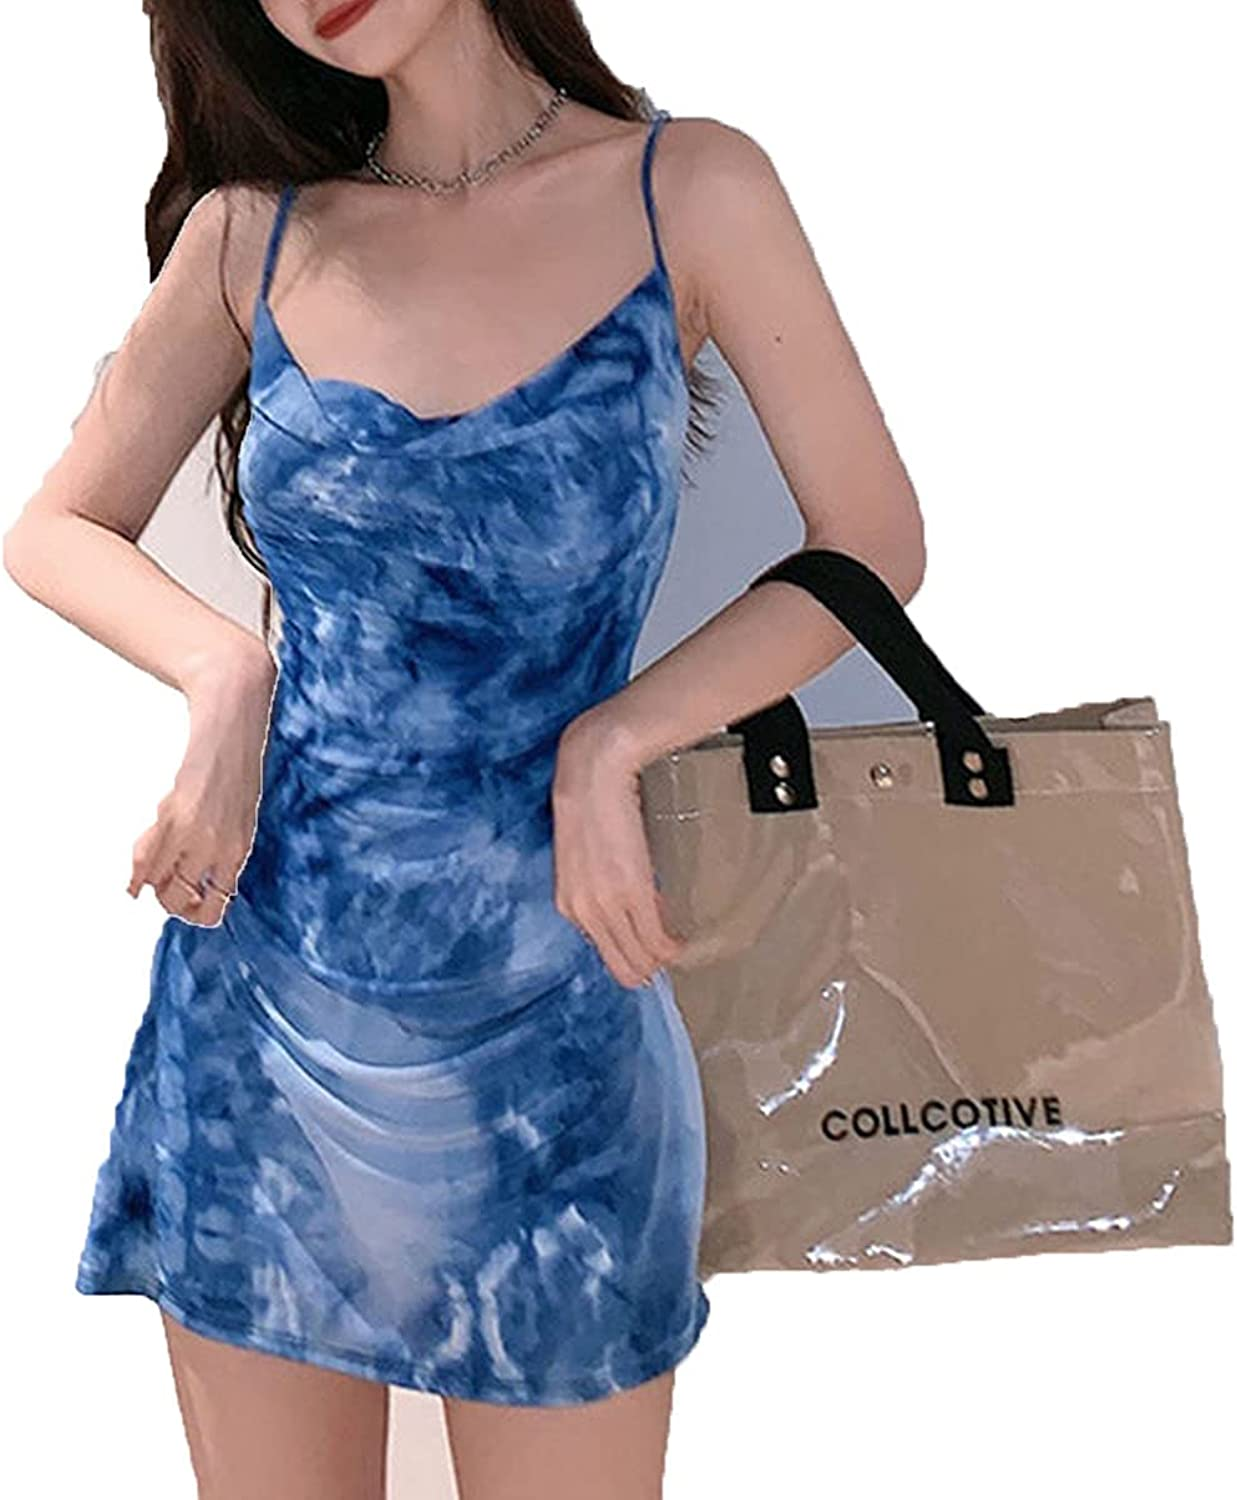 Everybody Let's Rock Ice Silk Sling Dress Slim Thin Dress Women Summer Beach Sexy Y2k Mini Dresses for Women Party Clothes